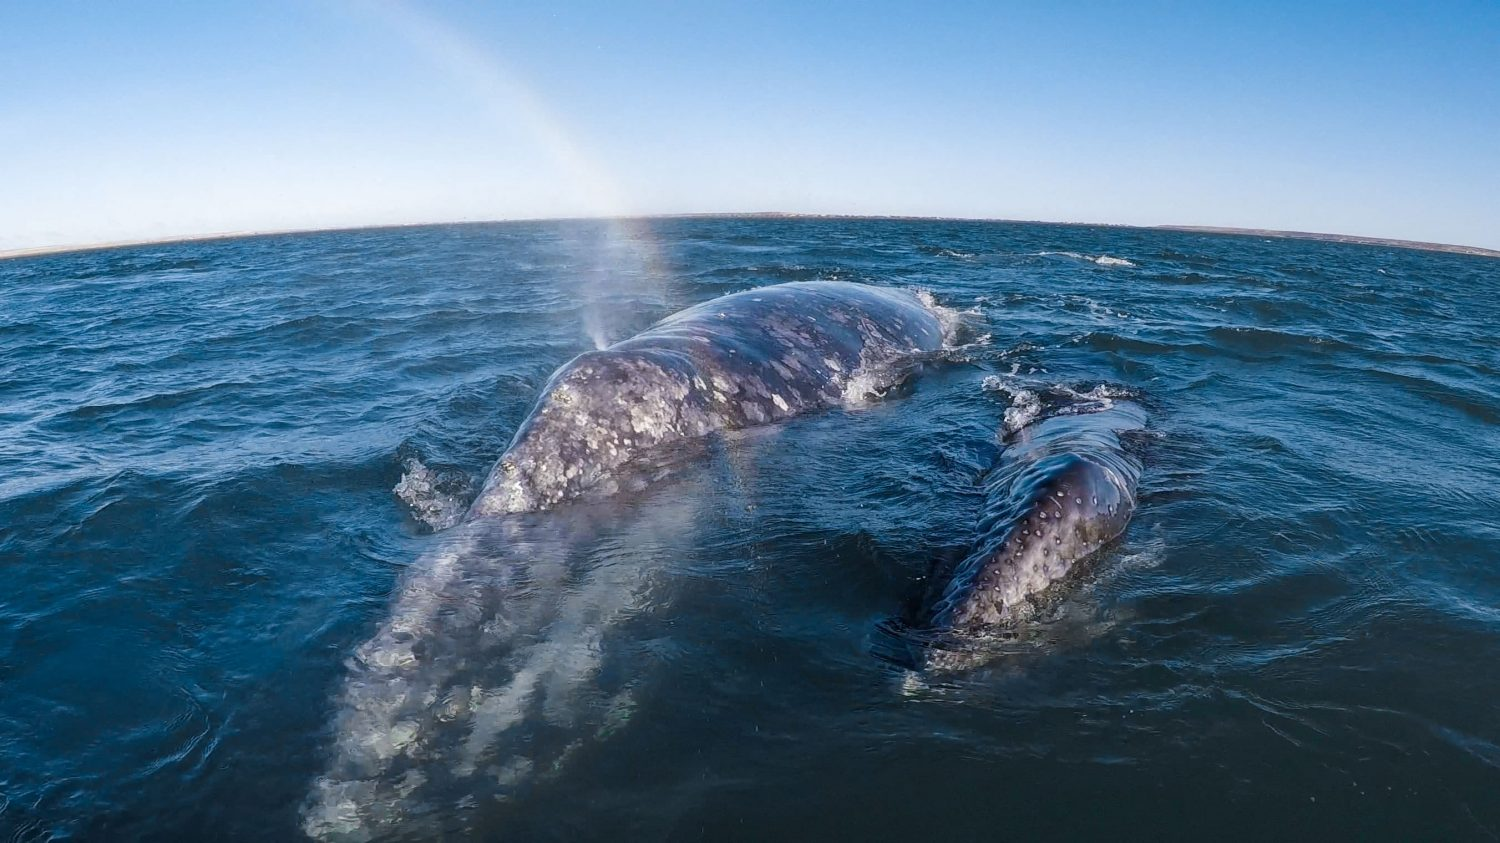 Baja: Whales to the South